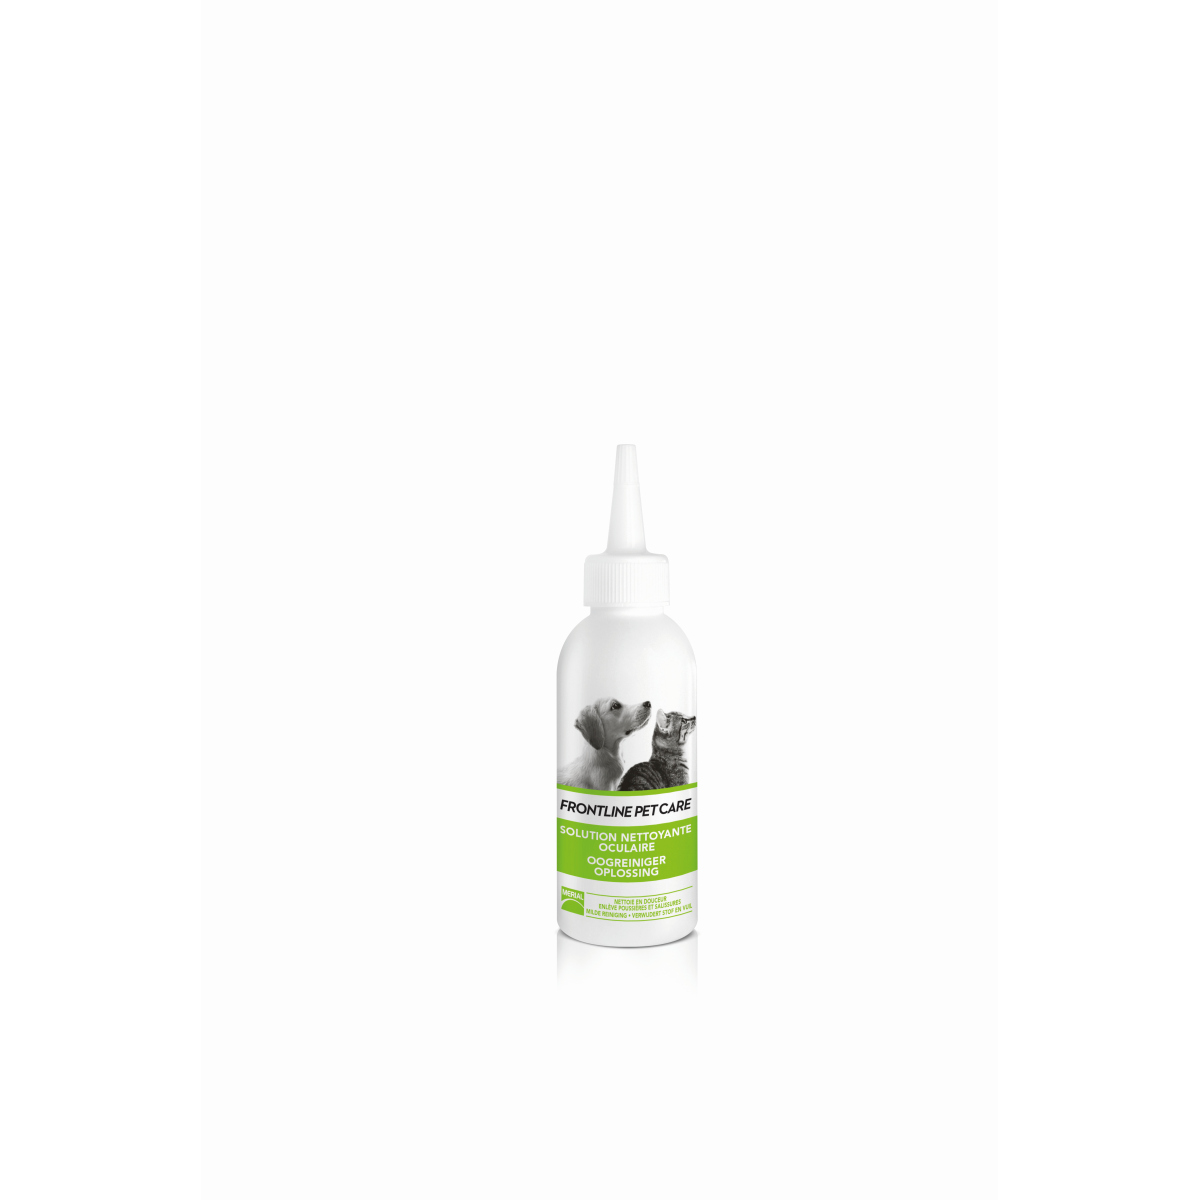 Pet care oogreiniger wit/groen 125 ml